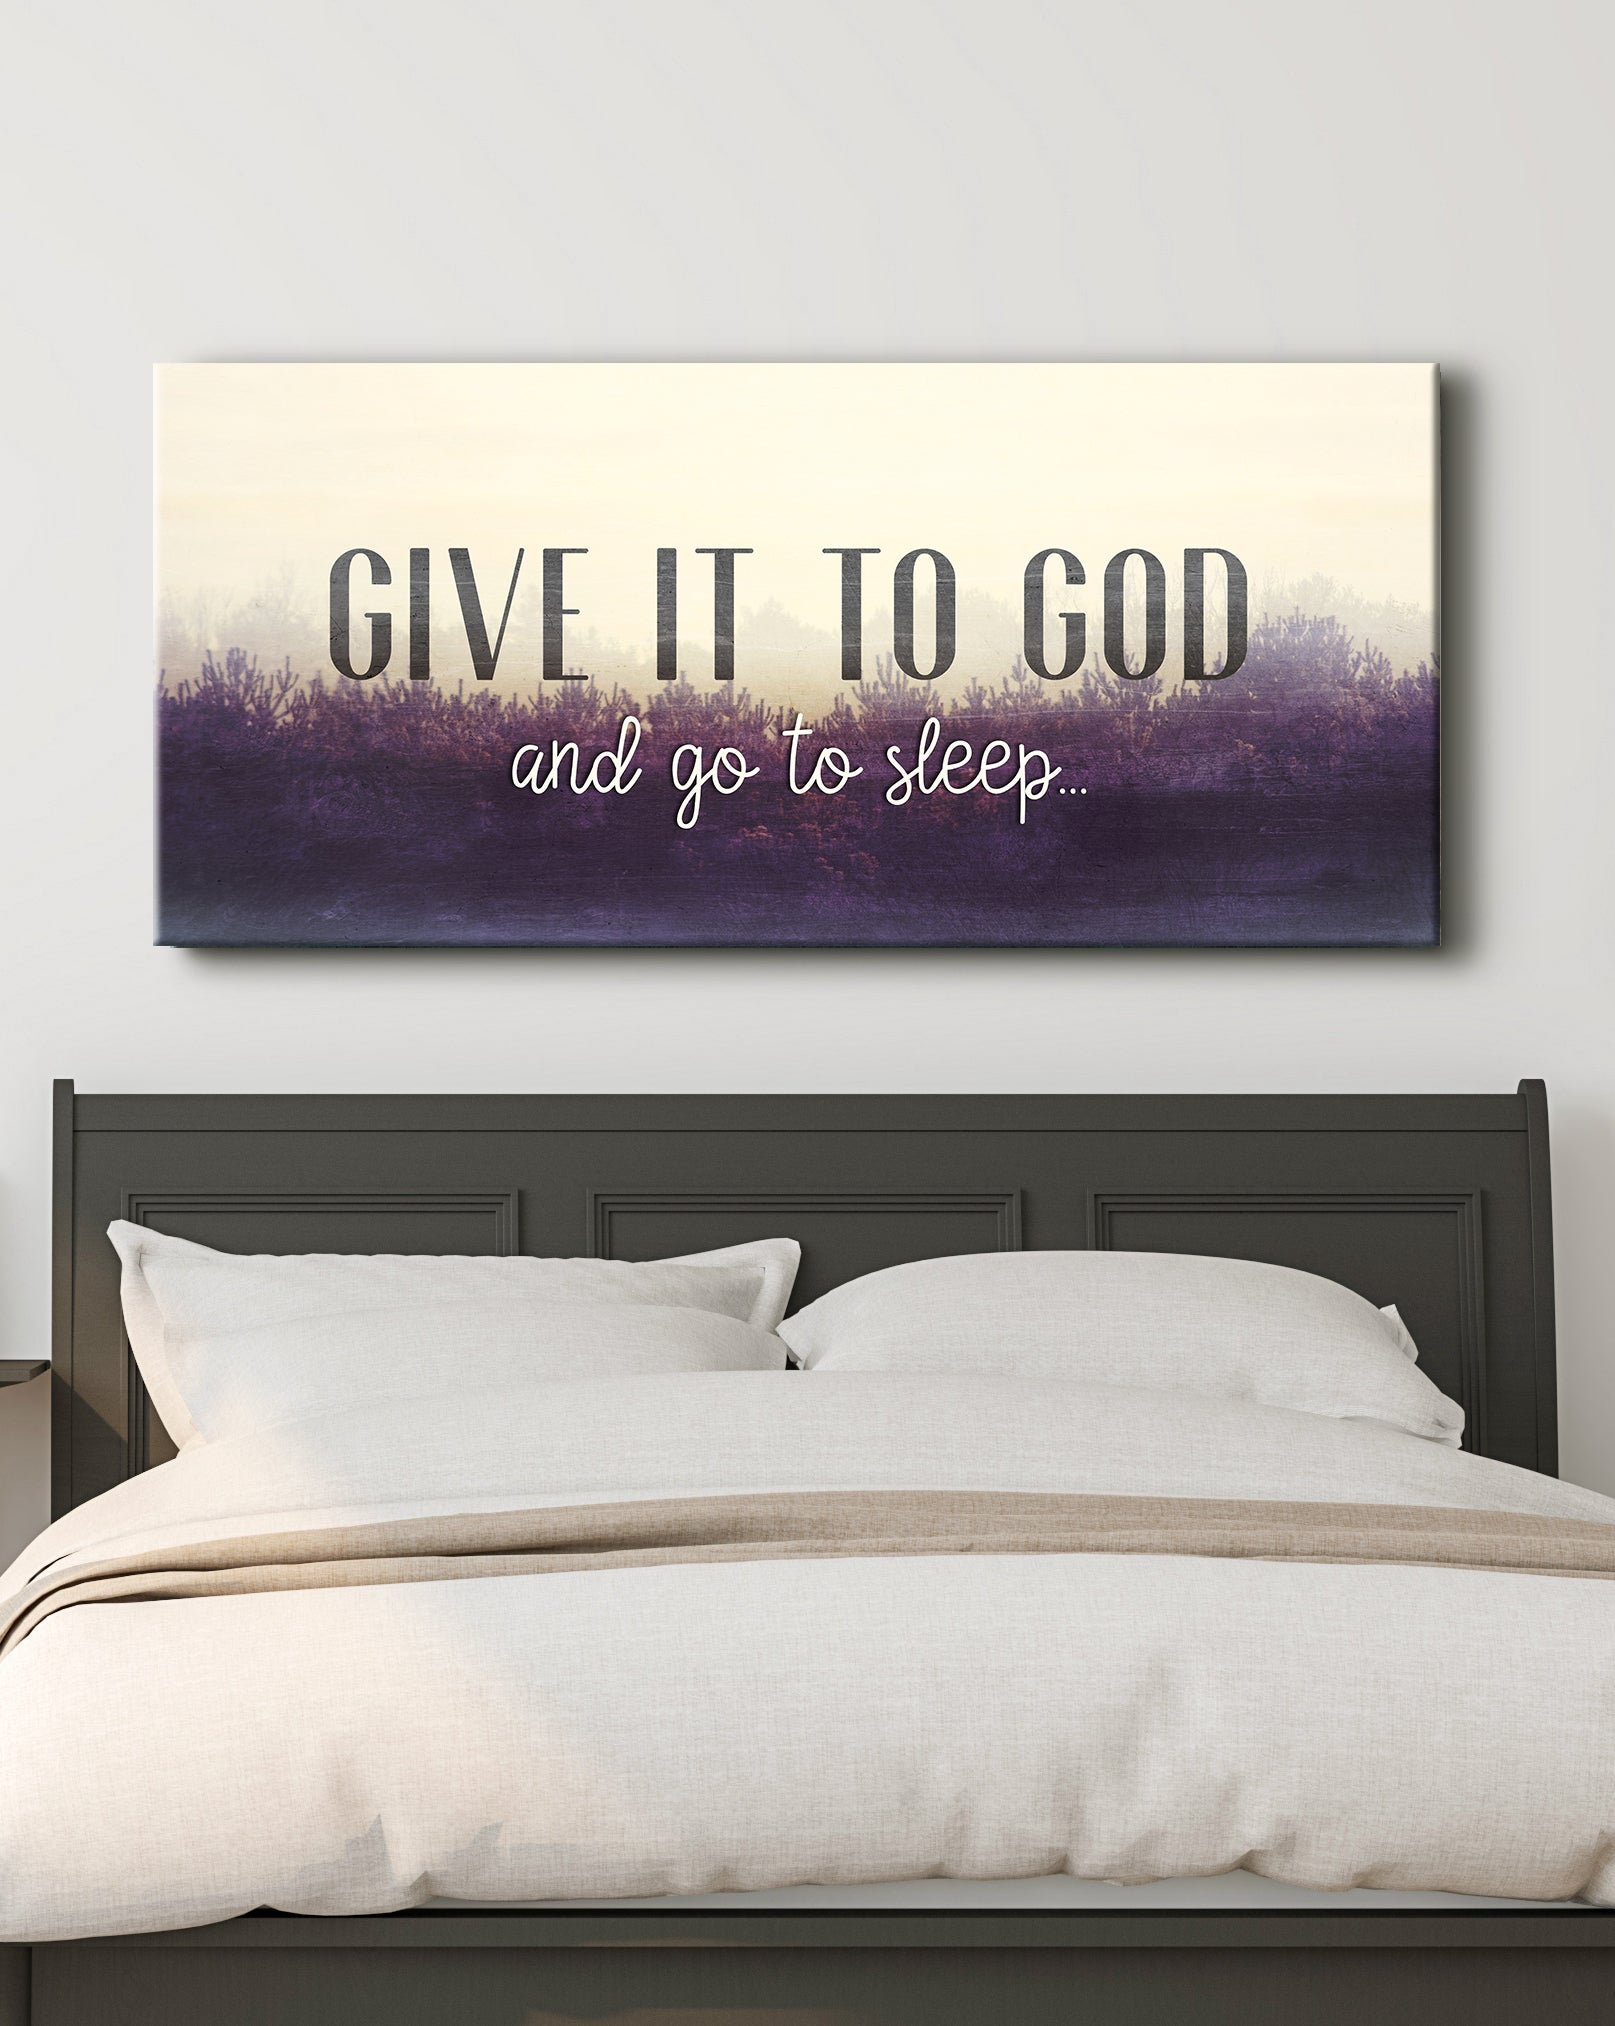 Christian Wall Art: Give It To God And Go To Sleep (Wood Frame Ready To Hang)